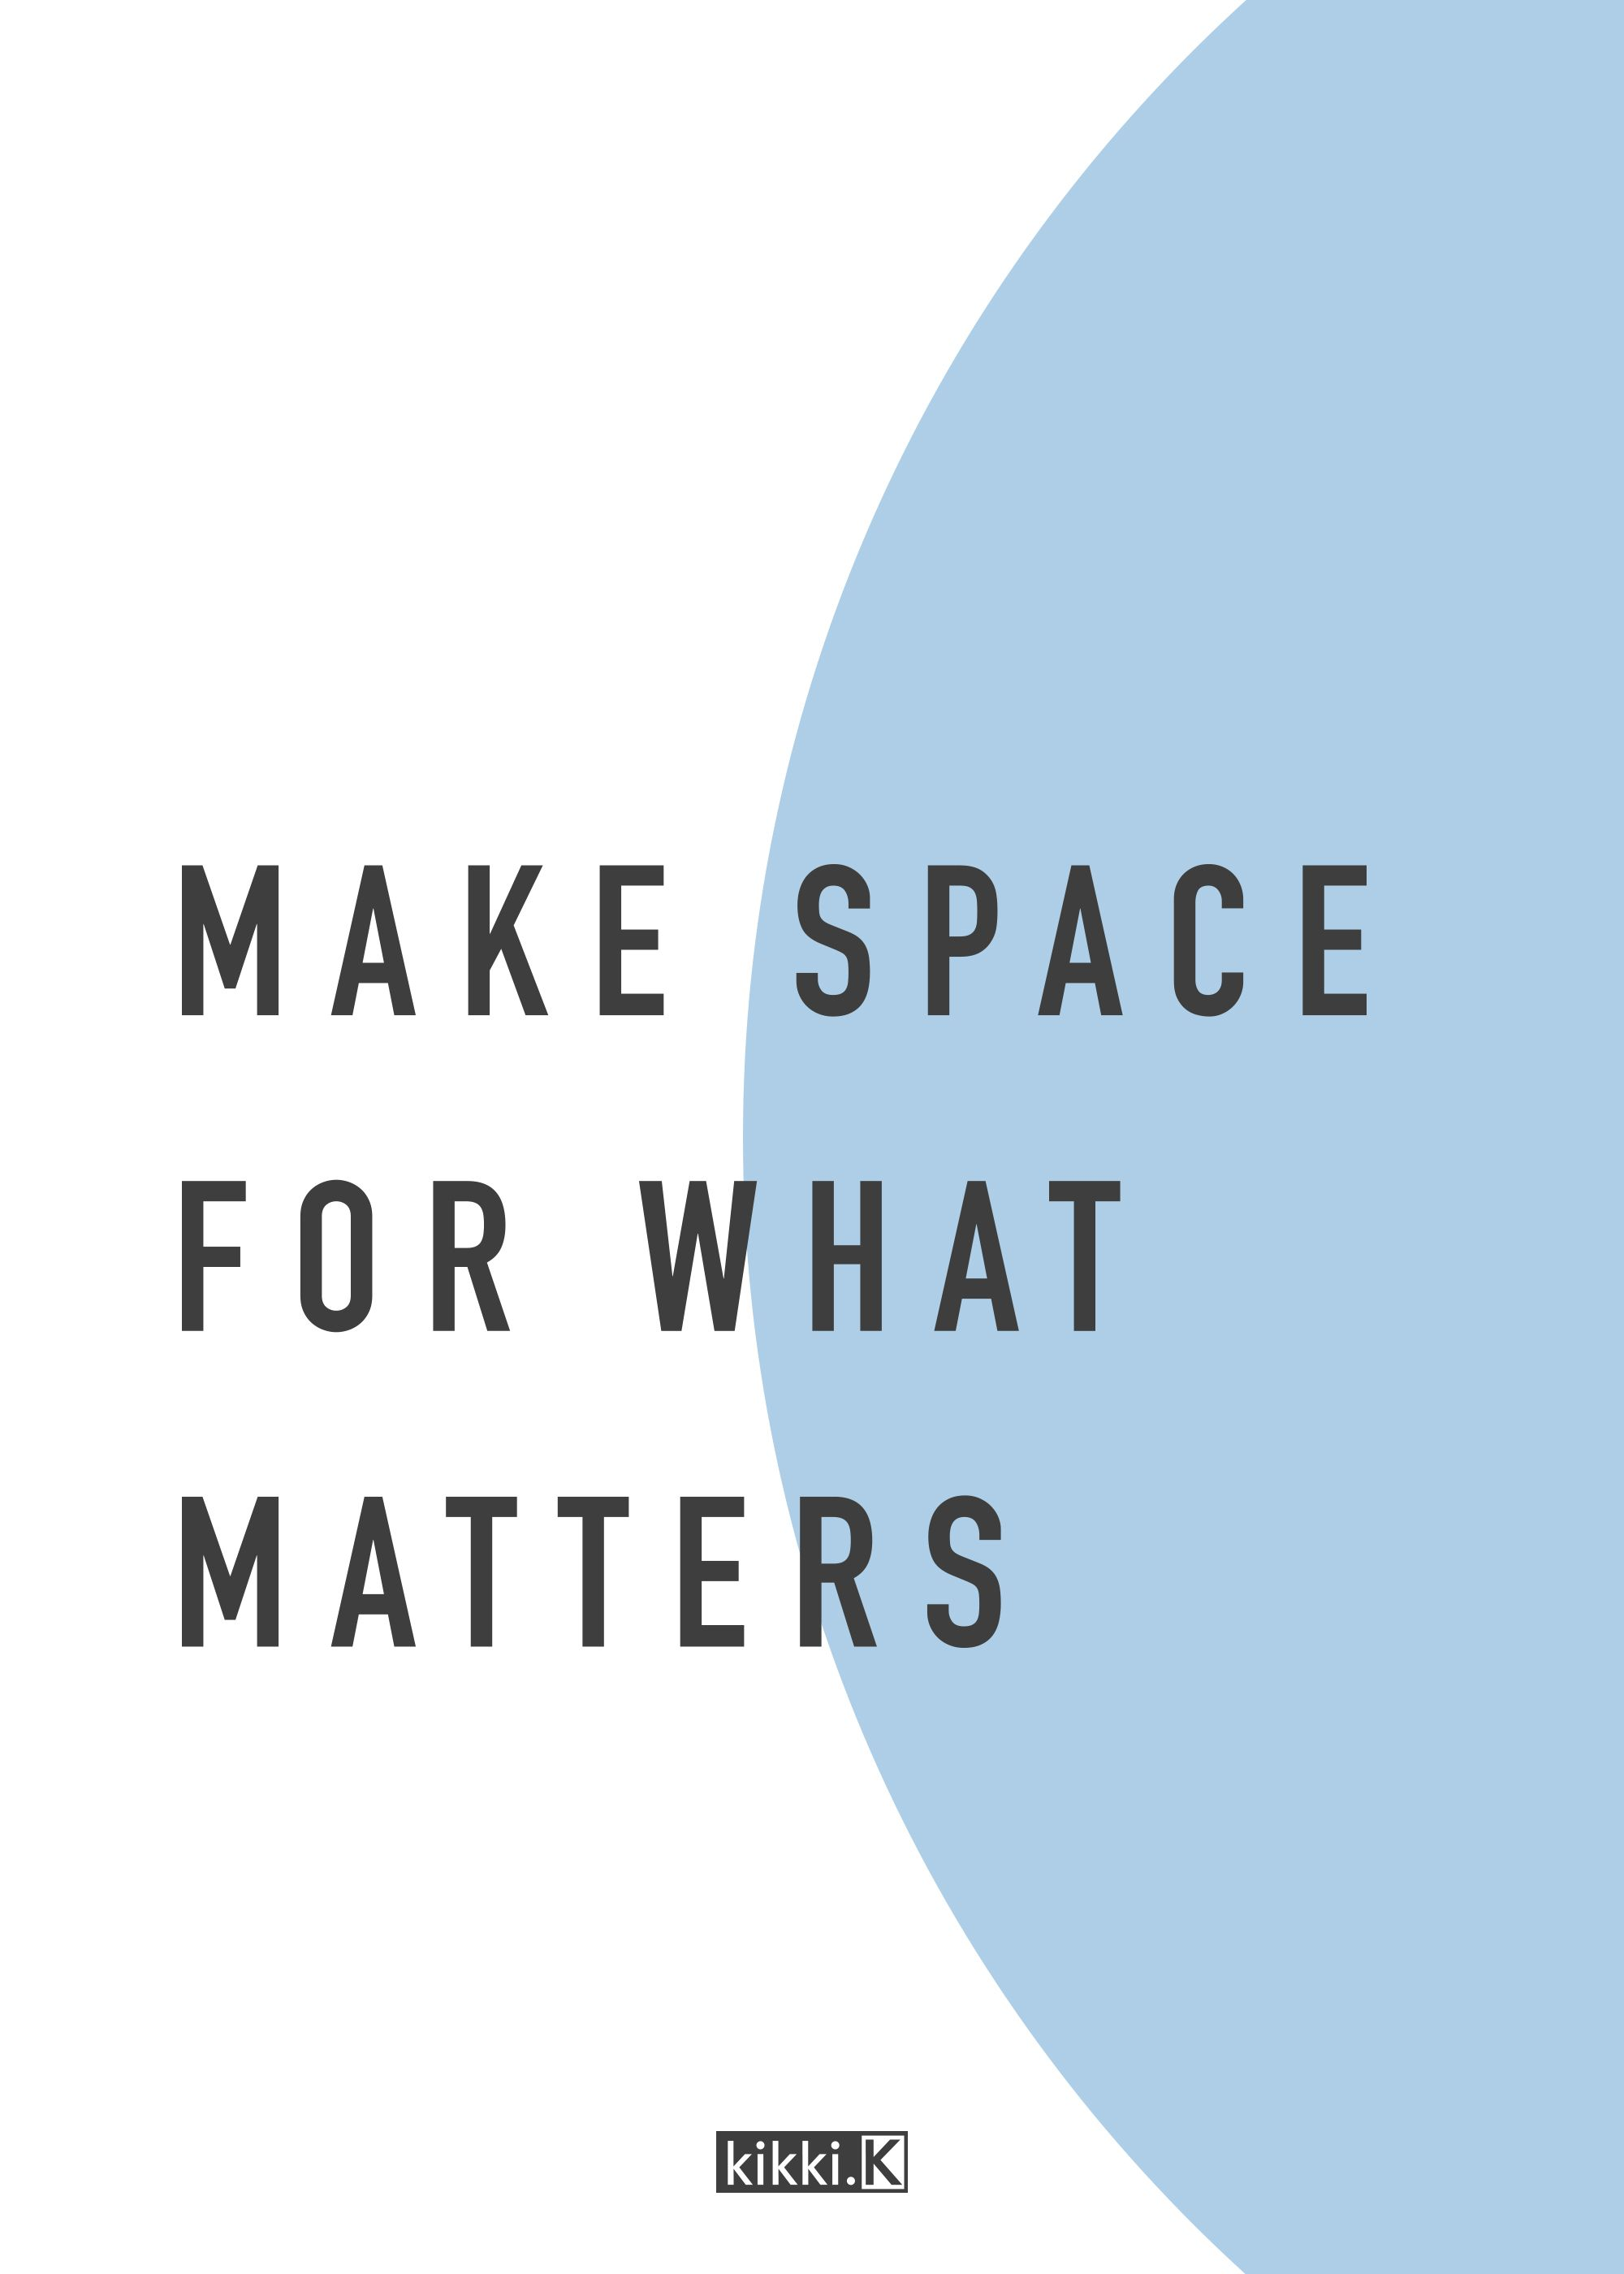 Charmant Inspiring Quote: Make Space For What Matters. Whether You Make Time For  Yourself,